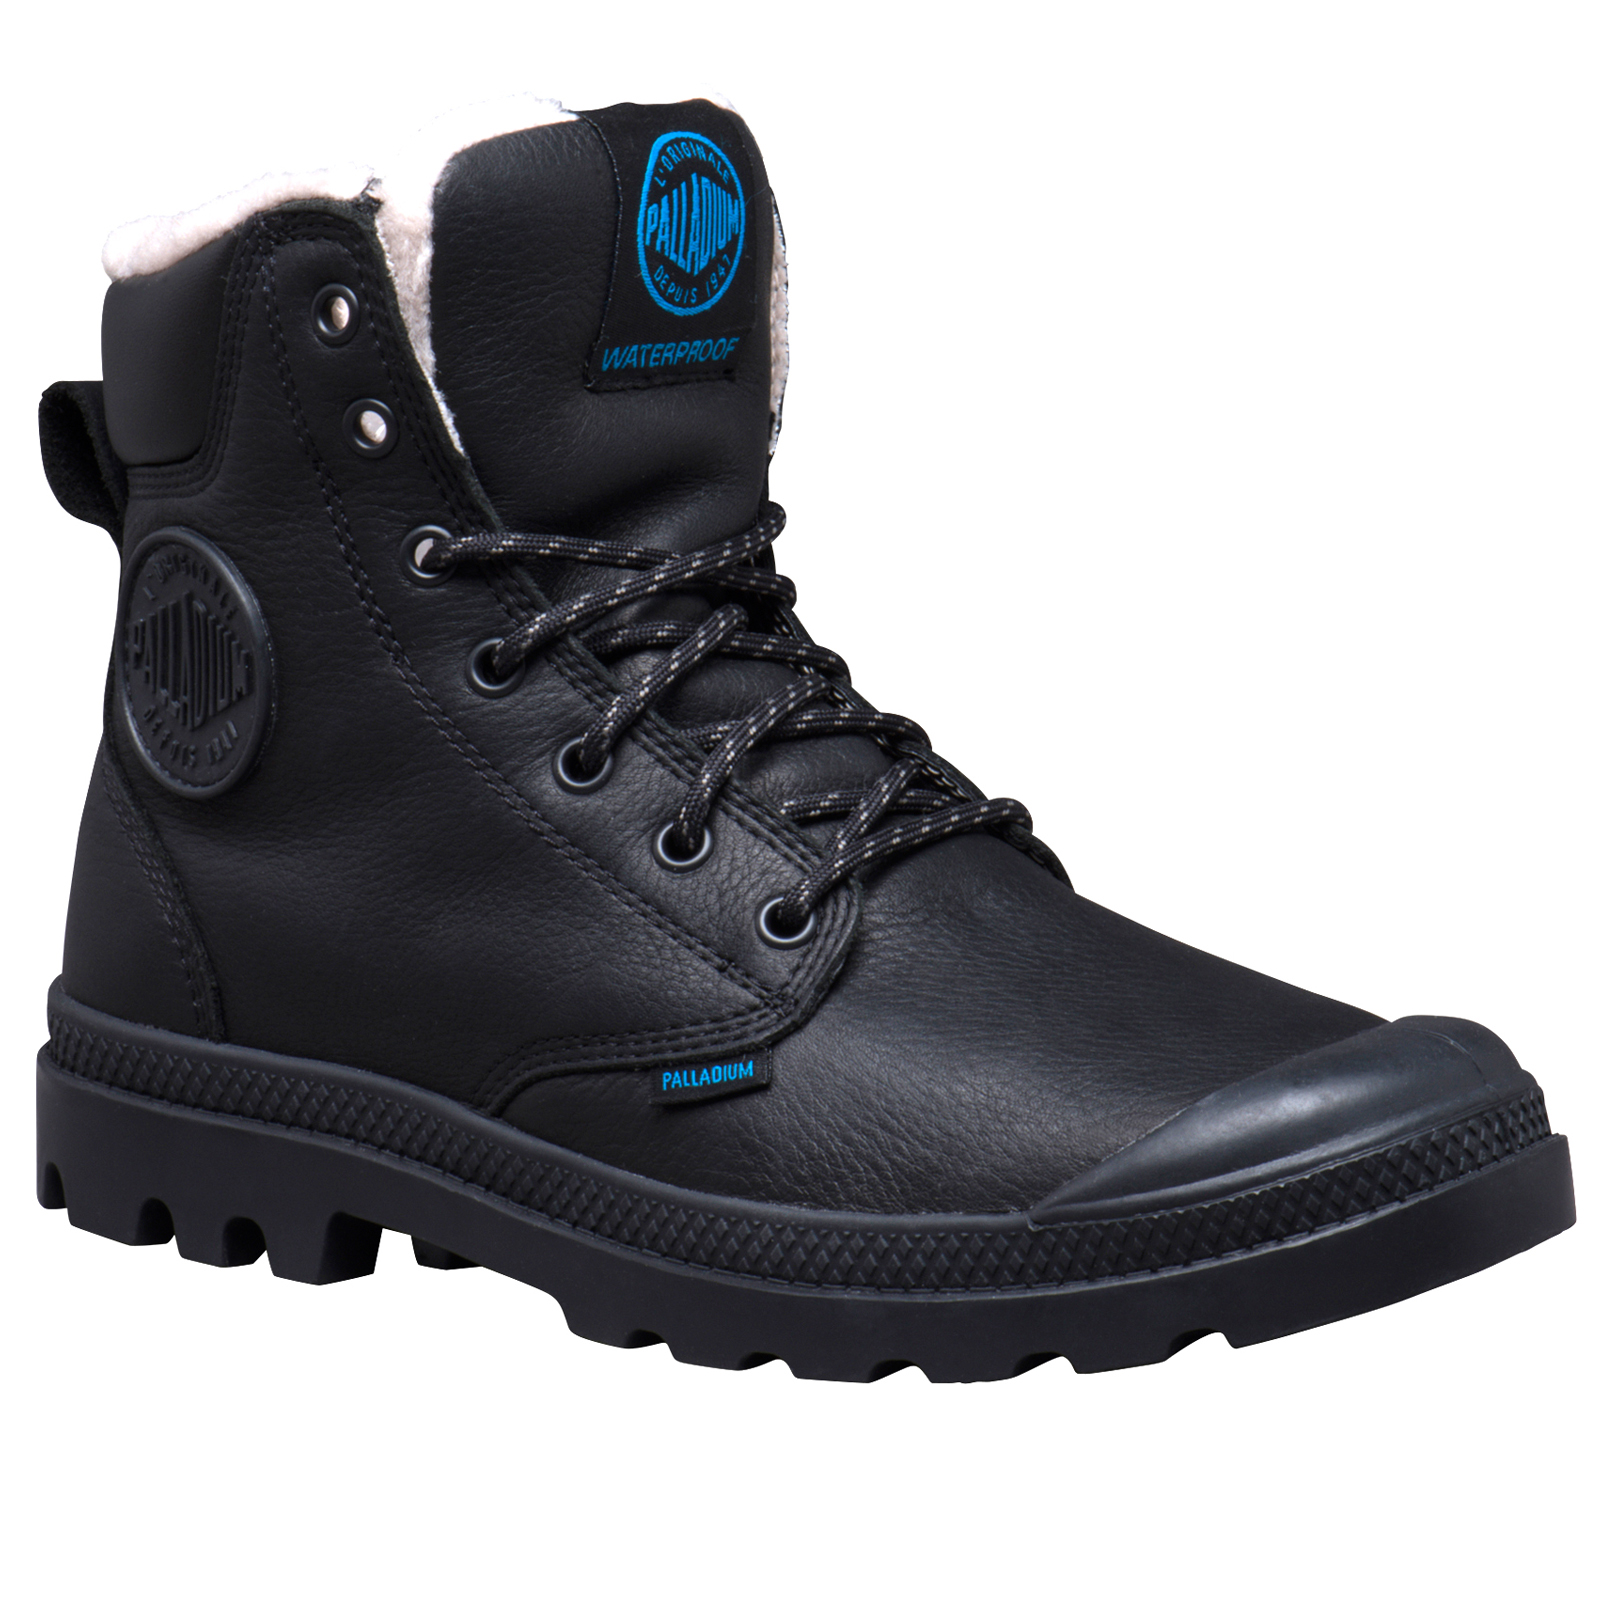 Palladium-Mens-Pampa-Sport-Cuff-Waterproof-Suede-Leather-Shoe-Wool-Lined-Boots thumbnail 8